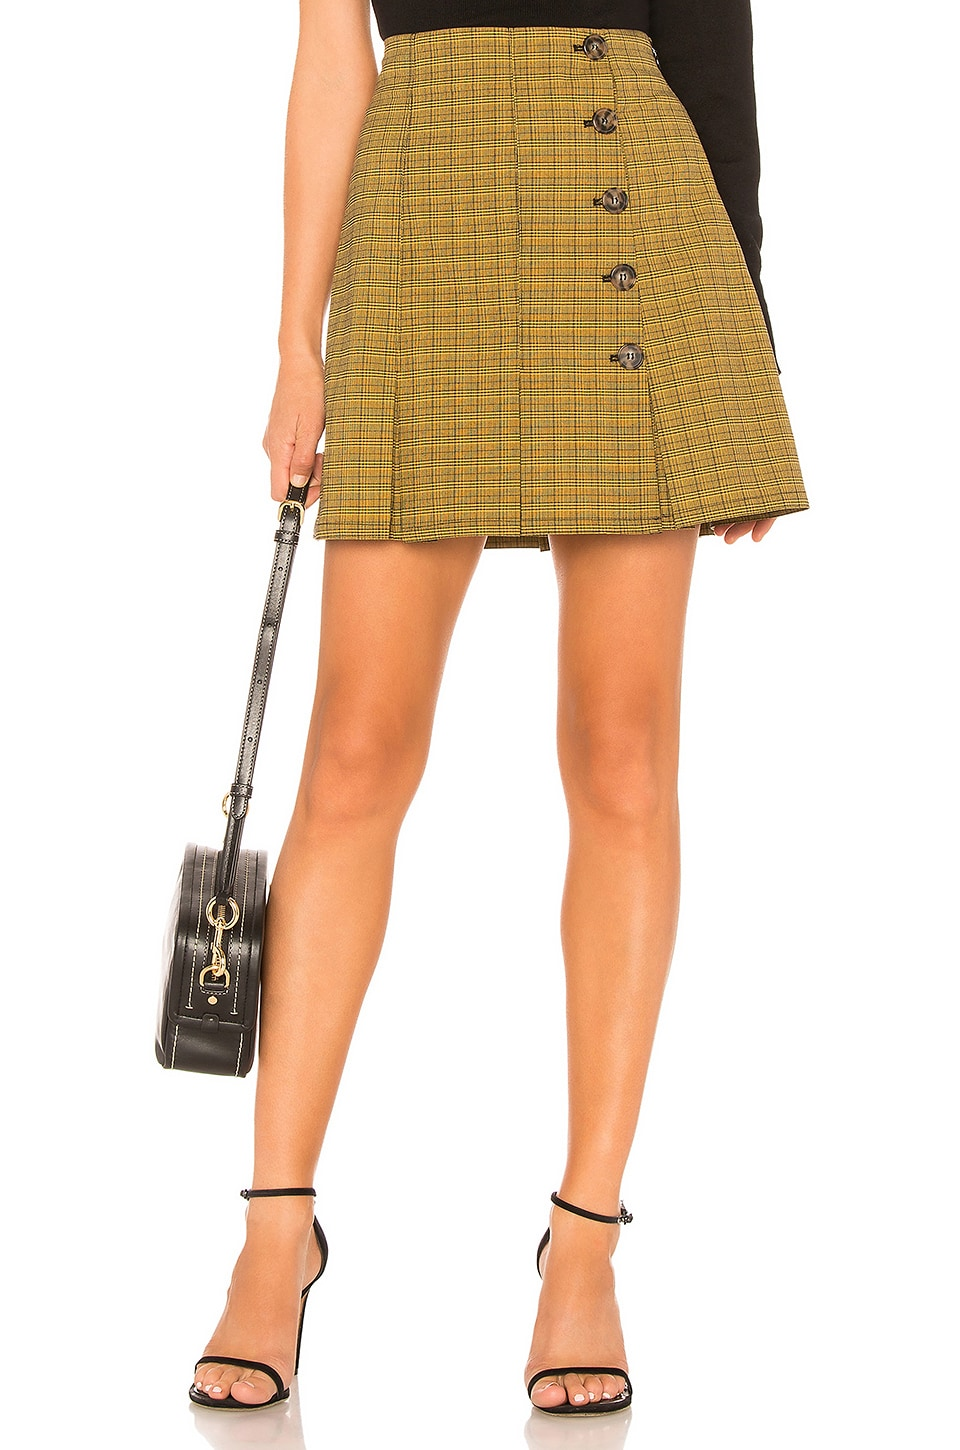 L'Academie The Micaela Mini Skirt in Yellow Plaid